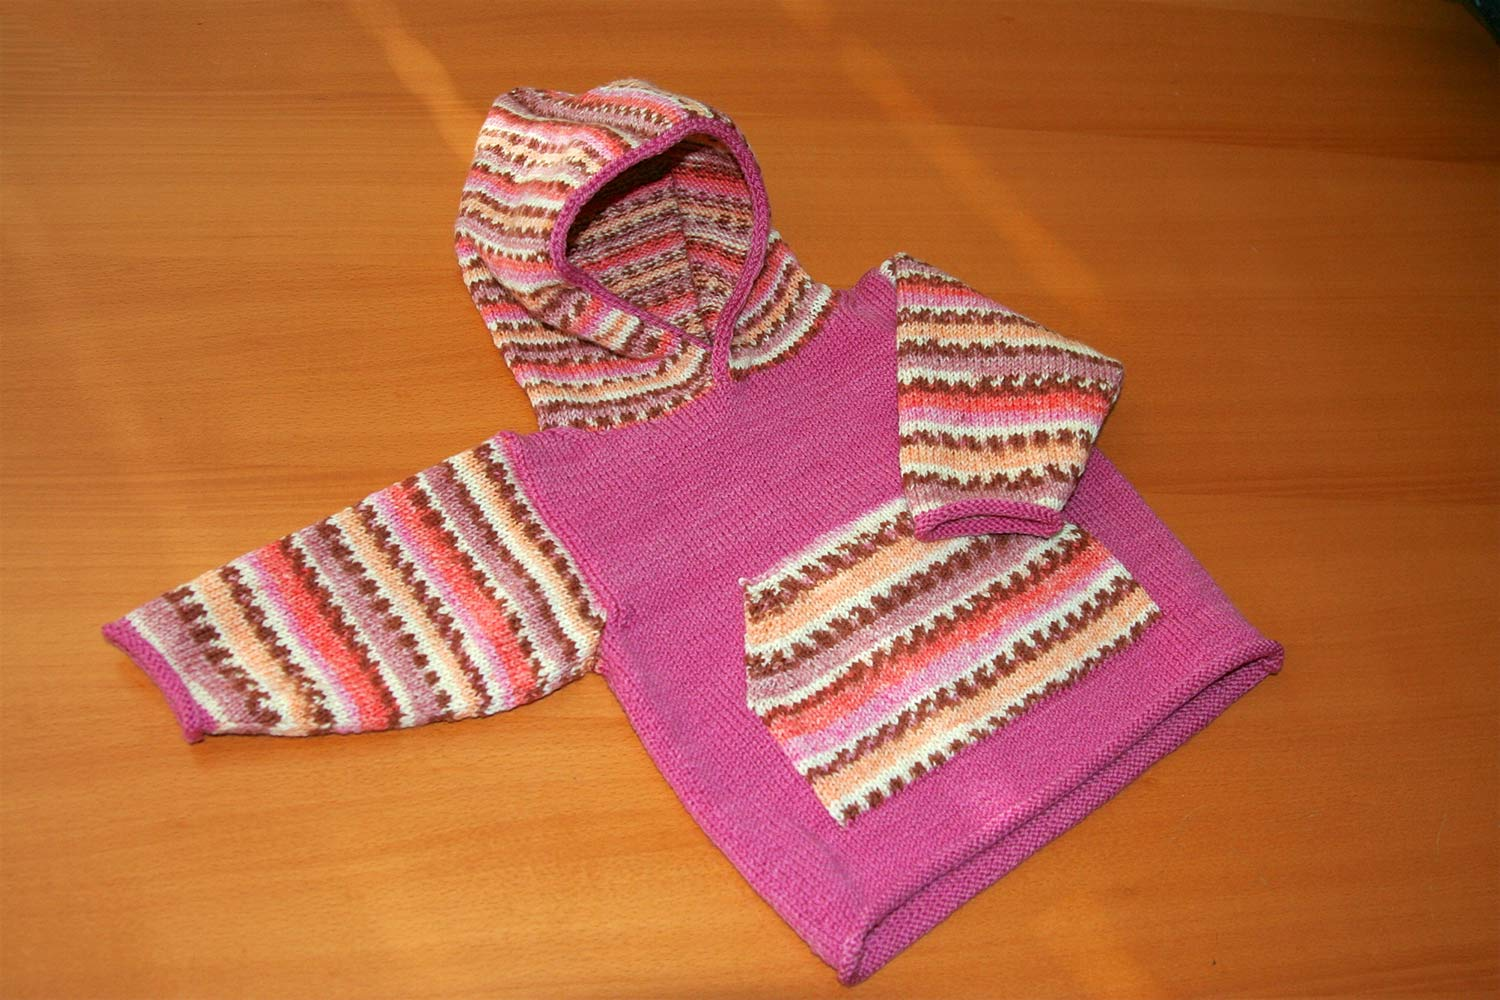 Baby hoodie lying flat on wood table with one arm straight out from body and other folded onto front; pink body with sleeves, pocket and hood worked in self-patterning yarn.